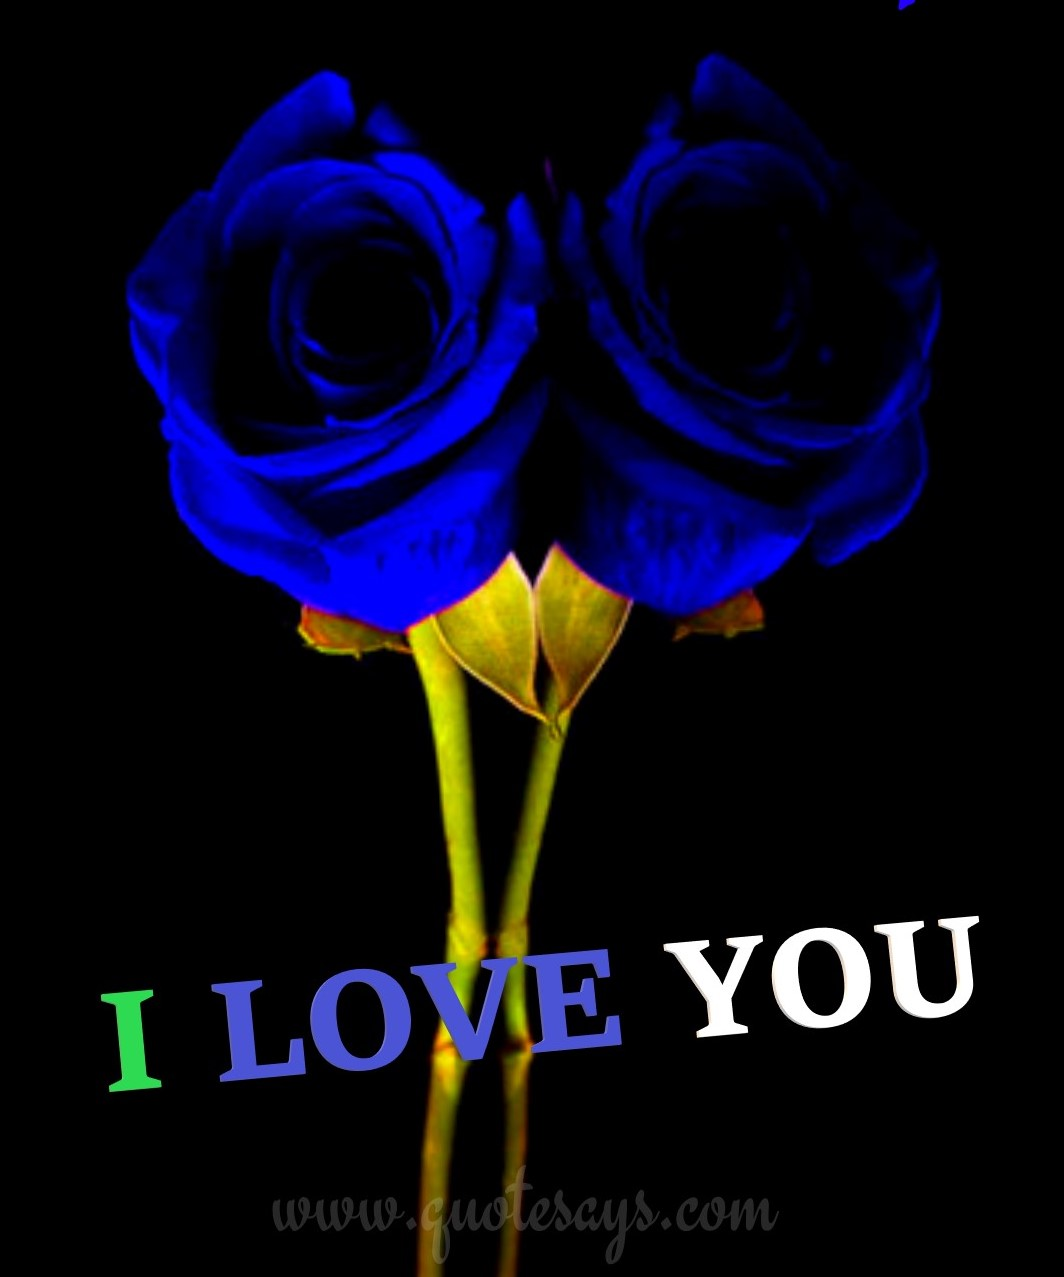 I Love You Images with Two Blue Rose